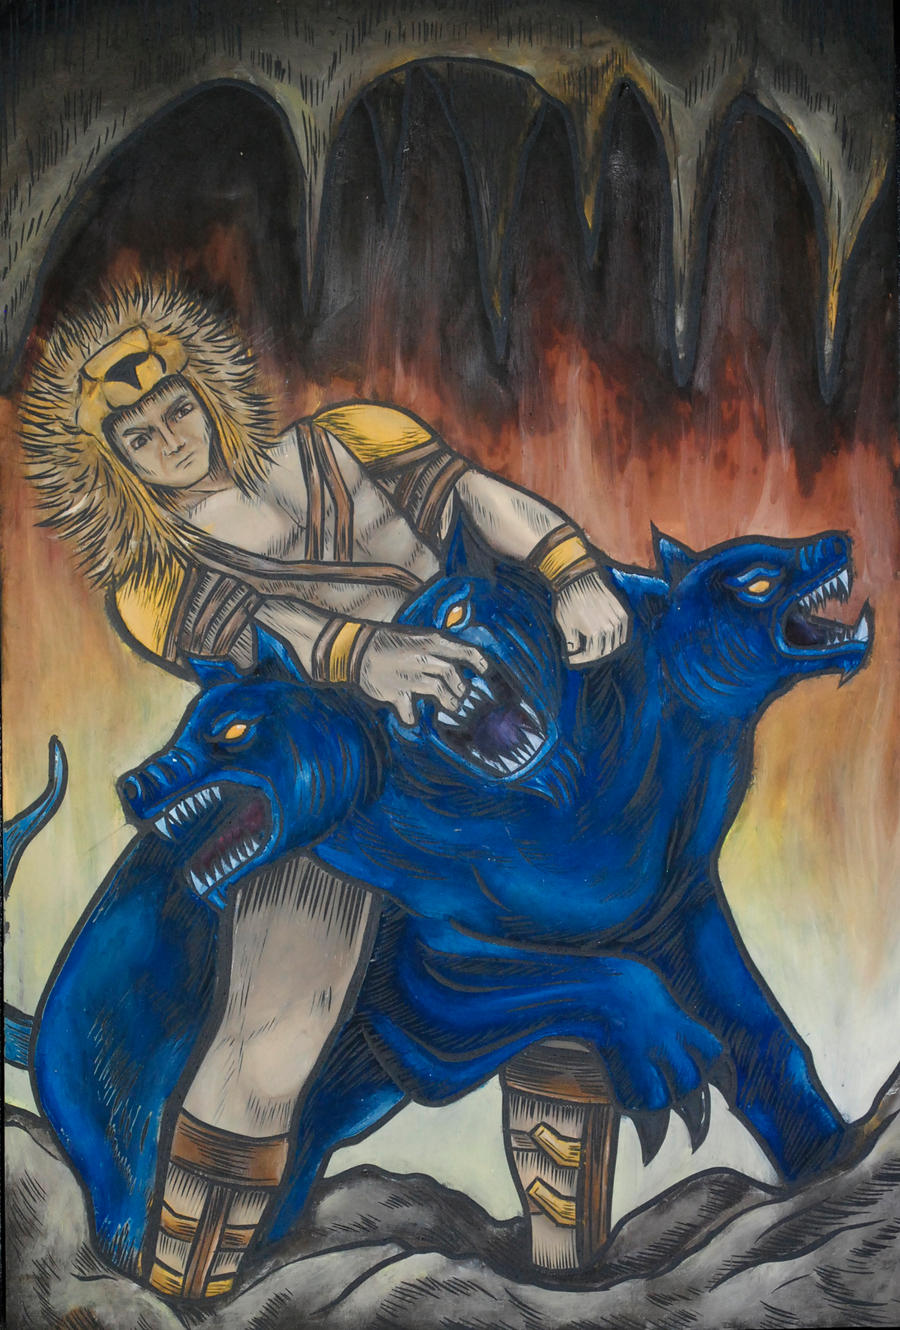 Hercules vs Cerberus by gabby023 on DeviantArt